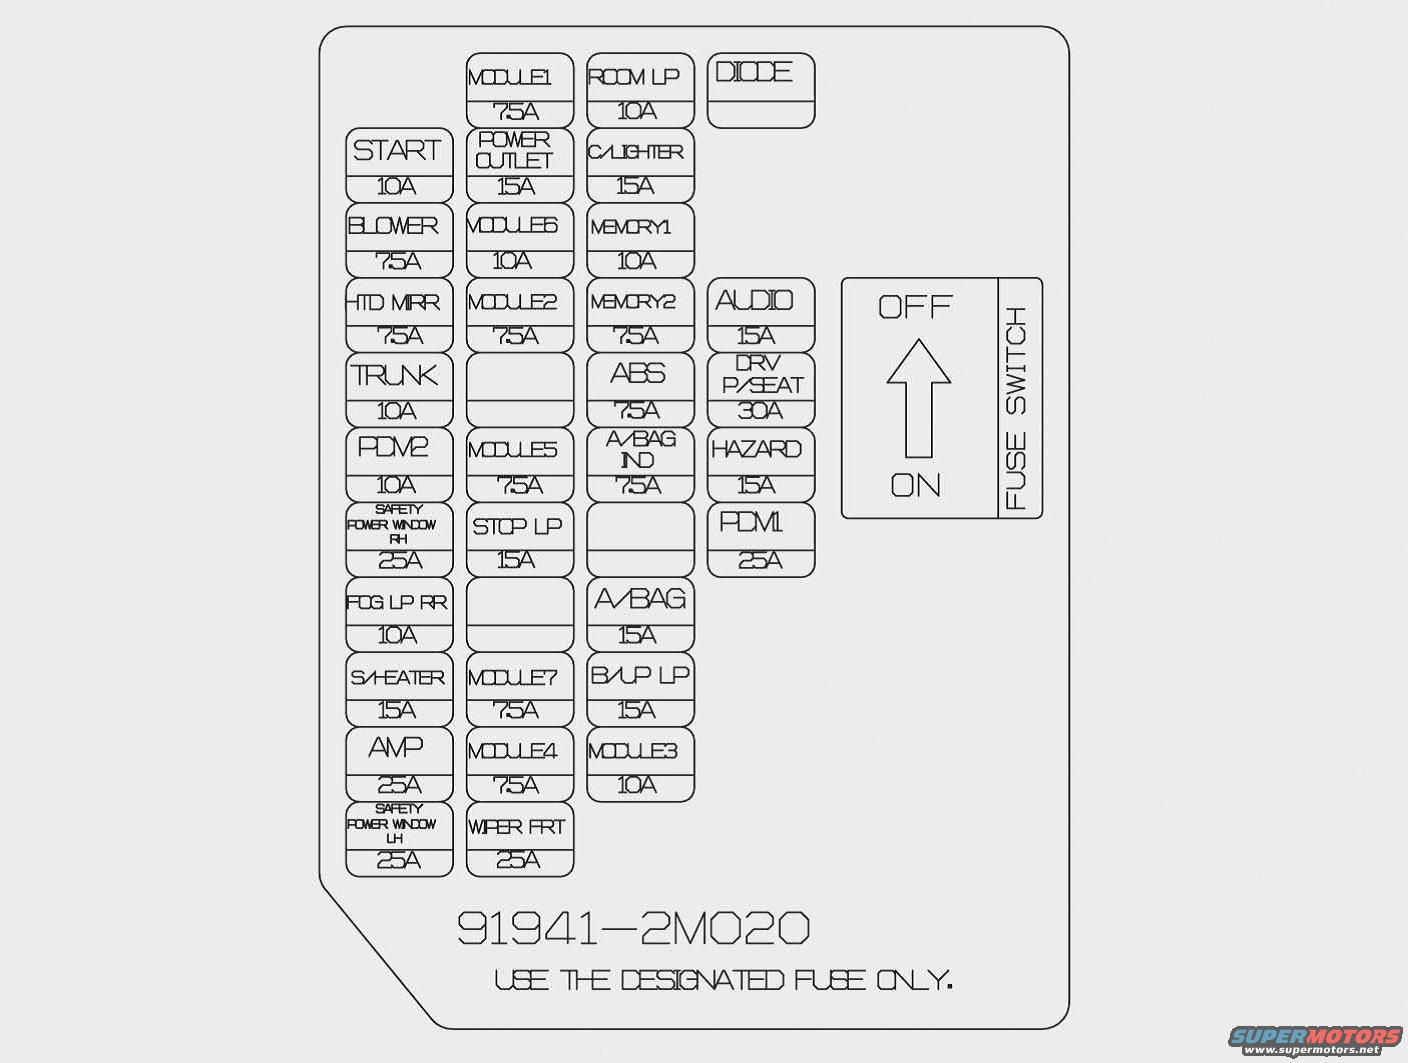 [WRG-0325] Hyundai Coupe 2002 Fuse Box Diagram